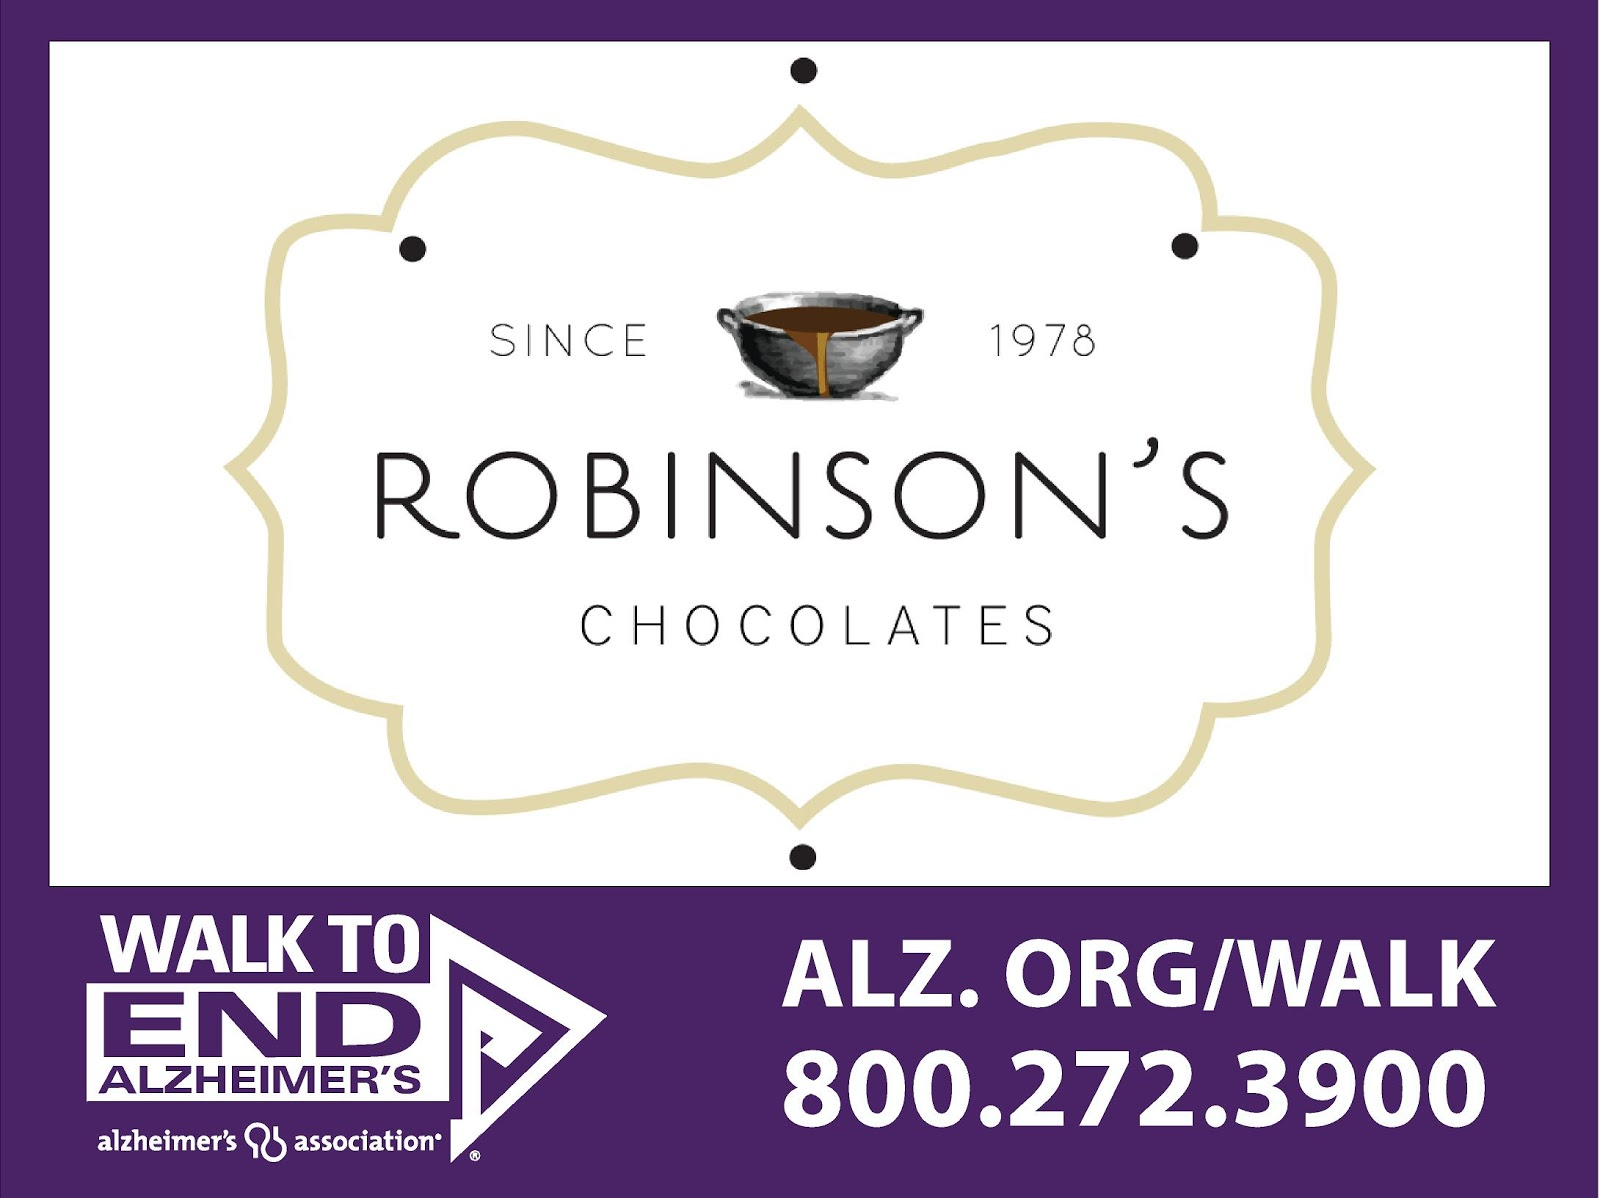 4. Robinsons Chocolate